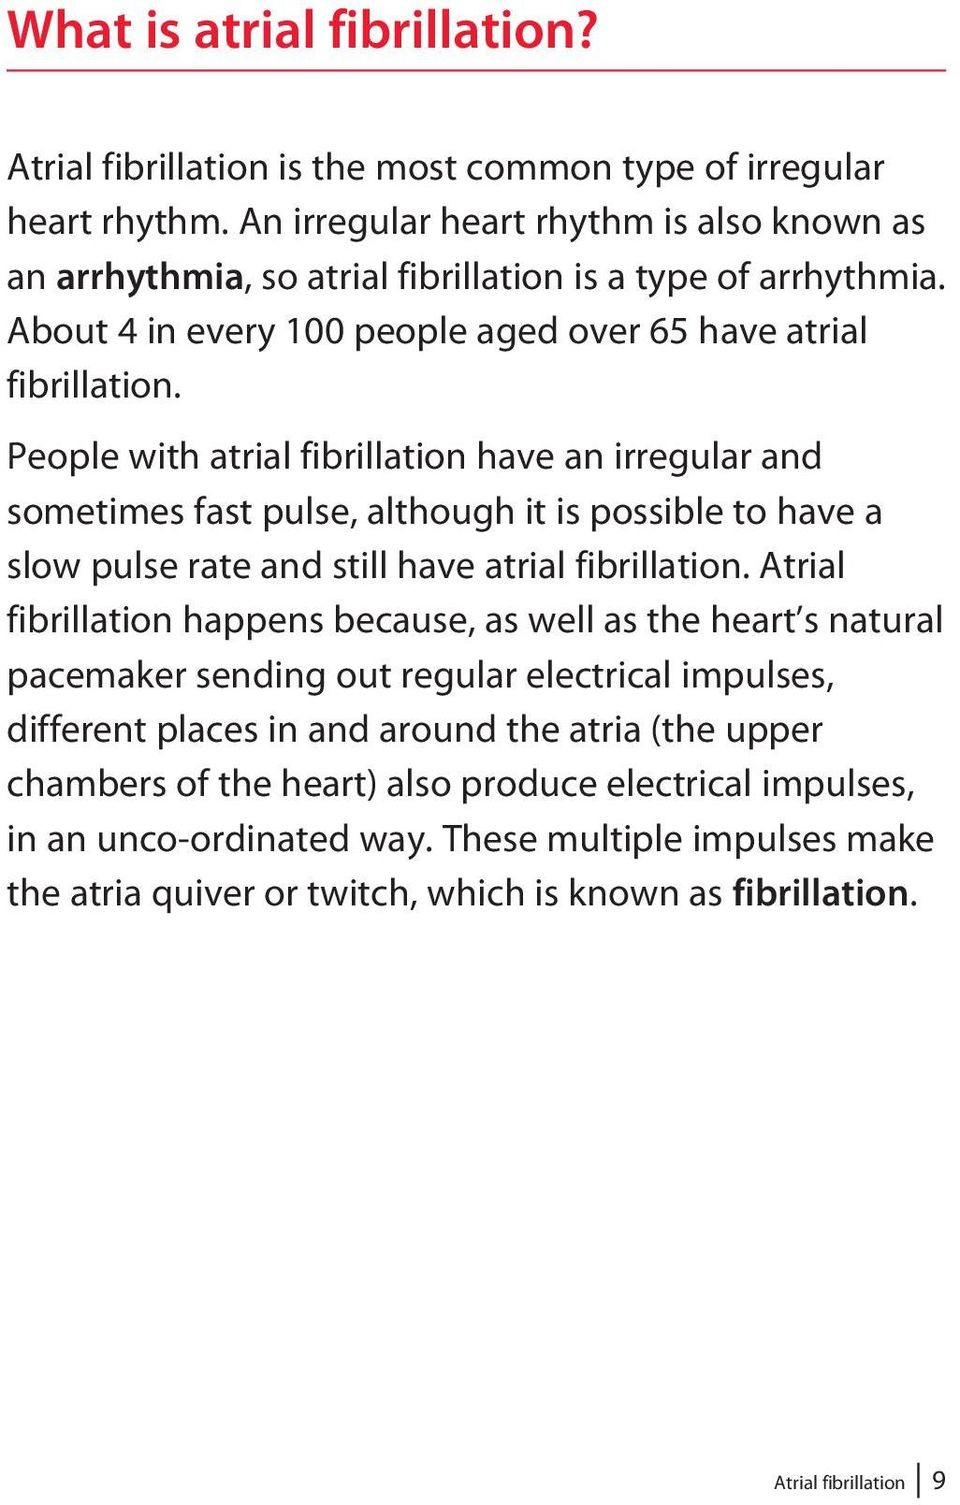 People with atrial fibrillation have an irregular and sometimes fast pulse, although it is possible to have a slow pulse rate and still have atrial fibrillation.